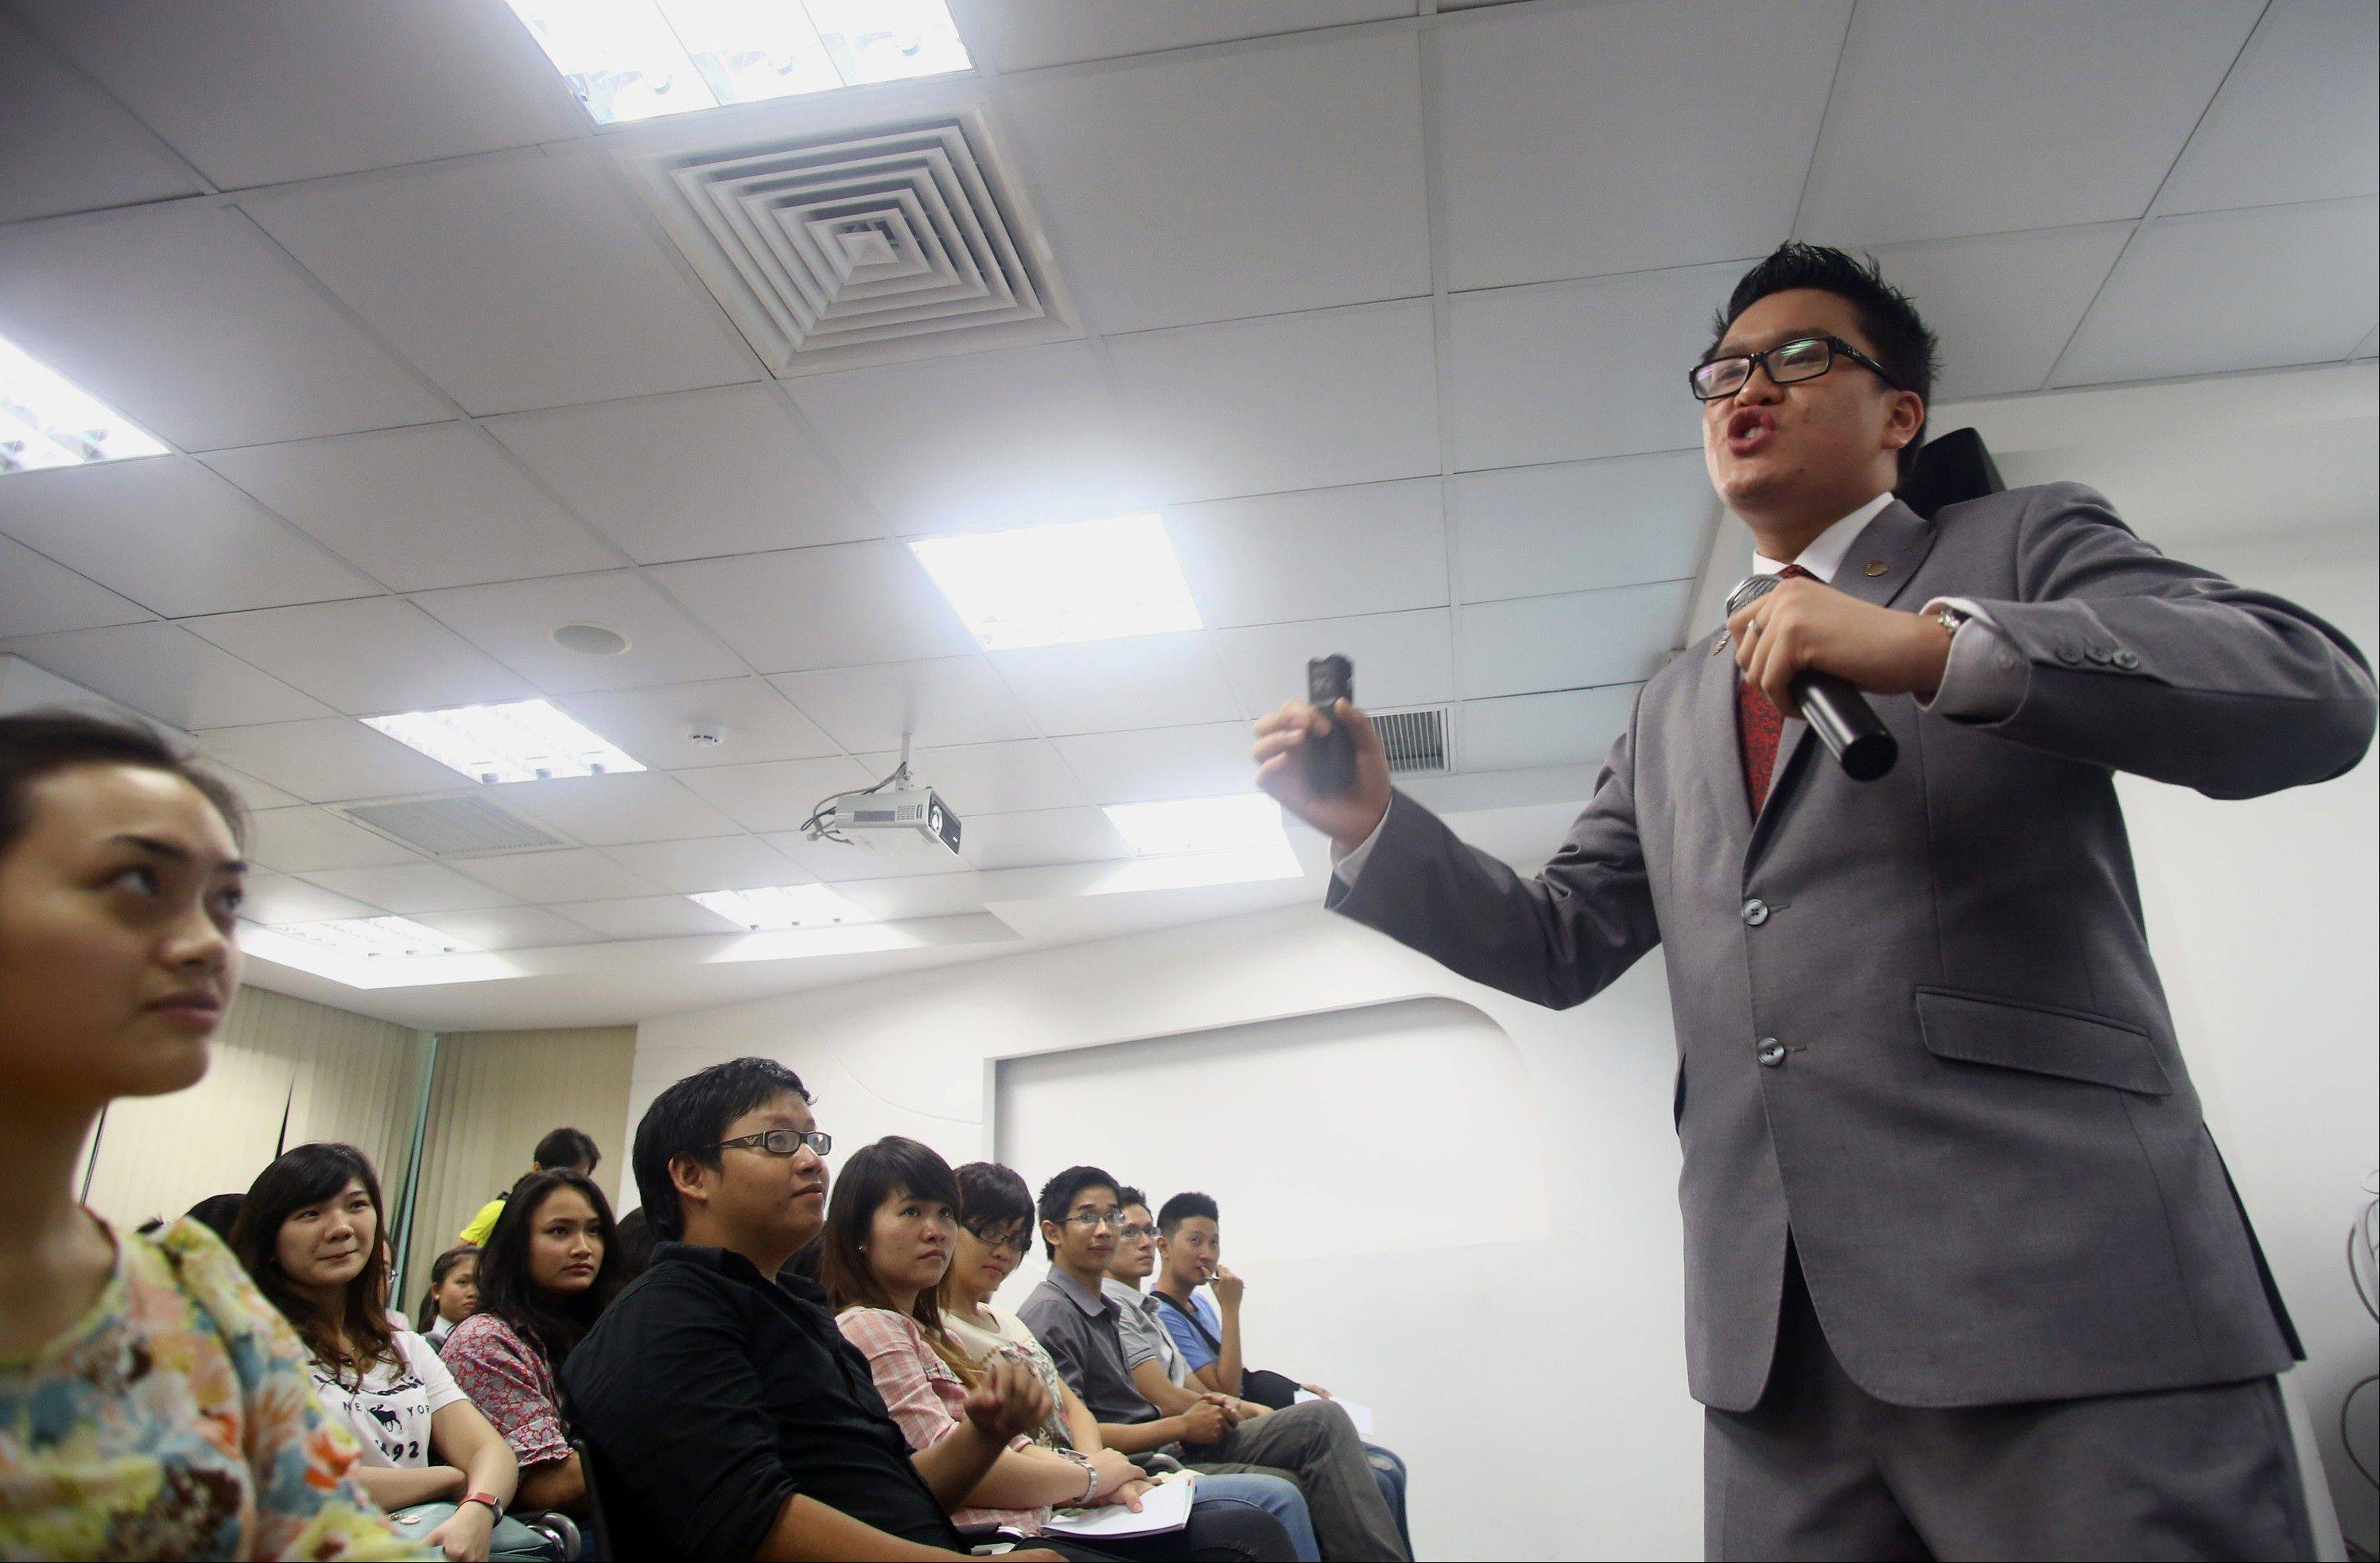 Australian Brian Tan, right, a �blue diamond� sales executive of Nu Skin, a multilevel marketing company, speaks during a presentation to economic students to expand and recruit distributors for his sales system at Nu Skin's office in Ho Chi Minh City, Vietnam. Nu Skin, which has stormed through Asia over the last two decades, racked up huge profits despite regulatory scrutiny over its marketing practices and the efficacy of the products that it sells.